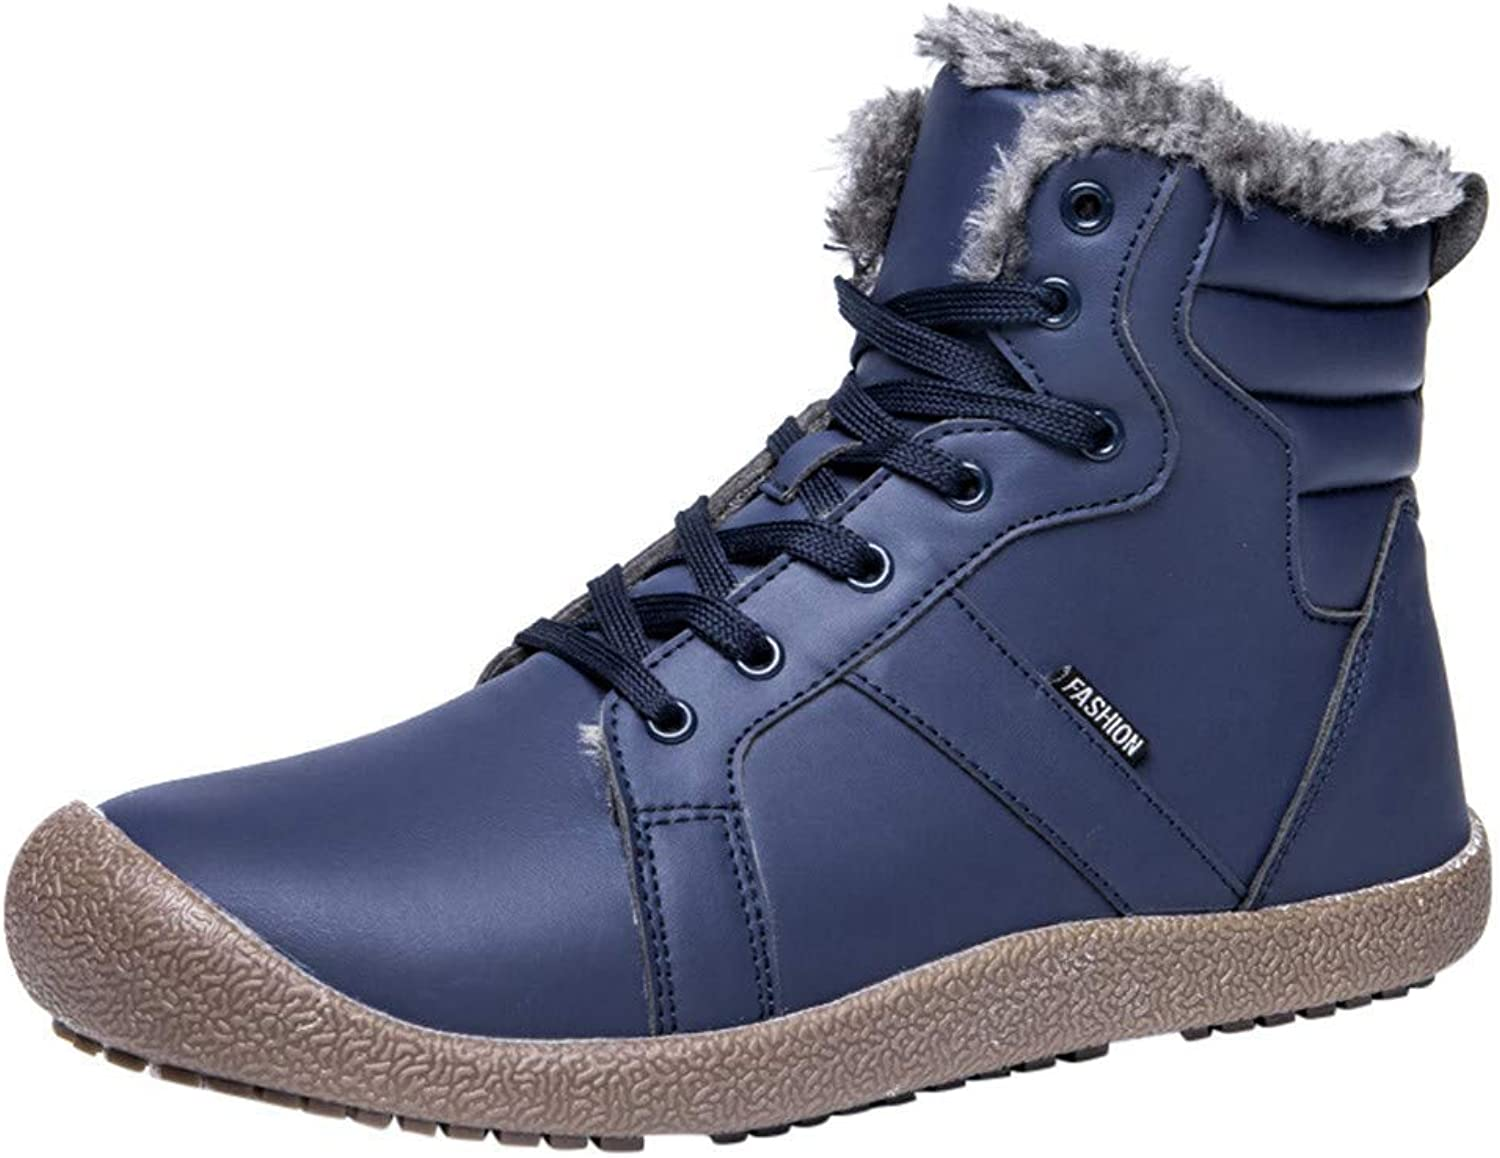 Qiusa Men Winter Warm Boots Casual shoes Fashion Plush Snow Boots1 (color   bluee 2, Size   46)